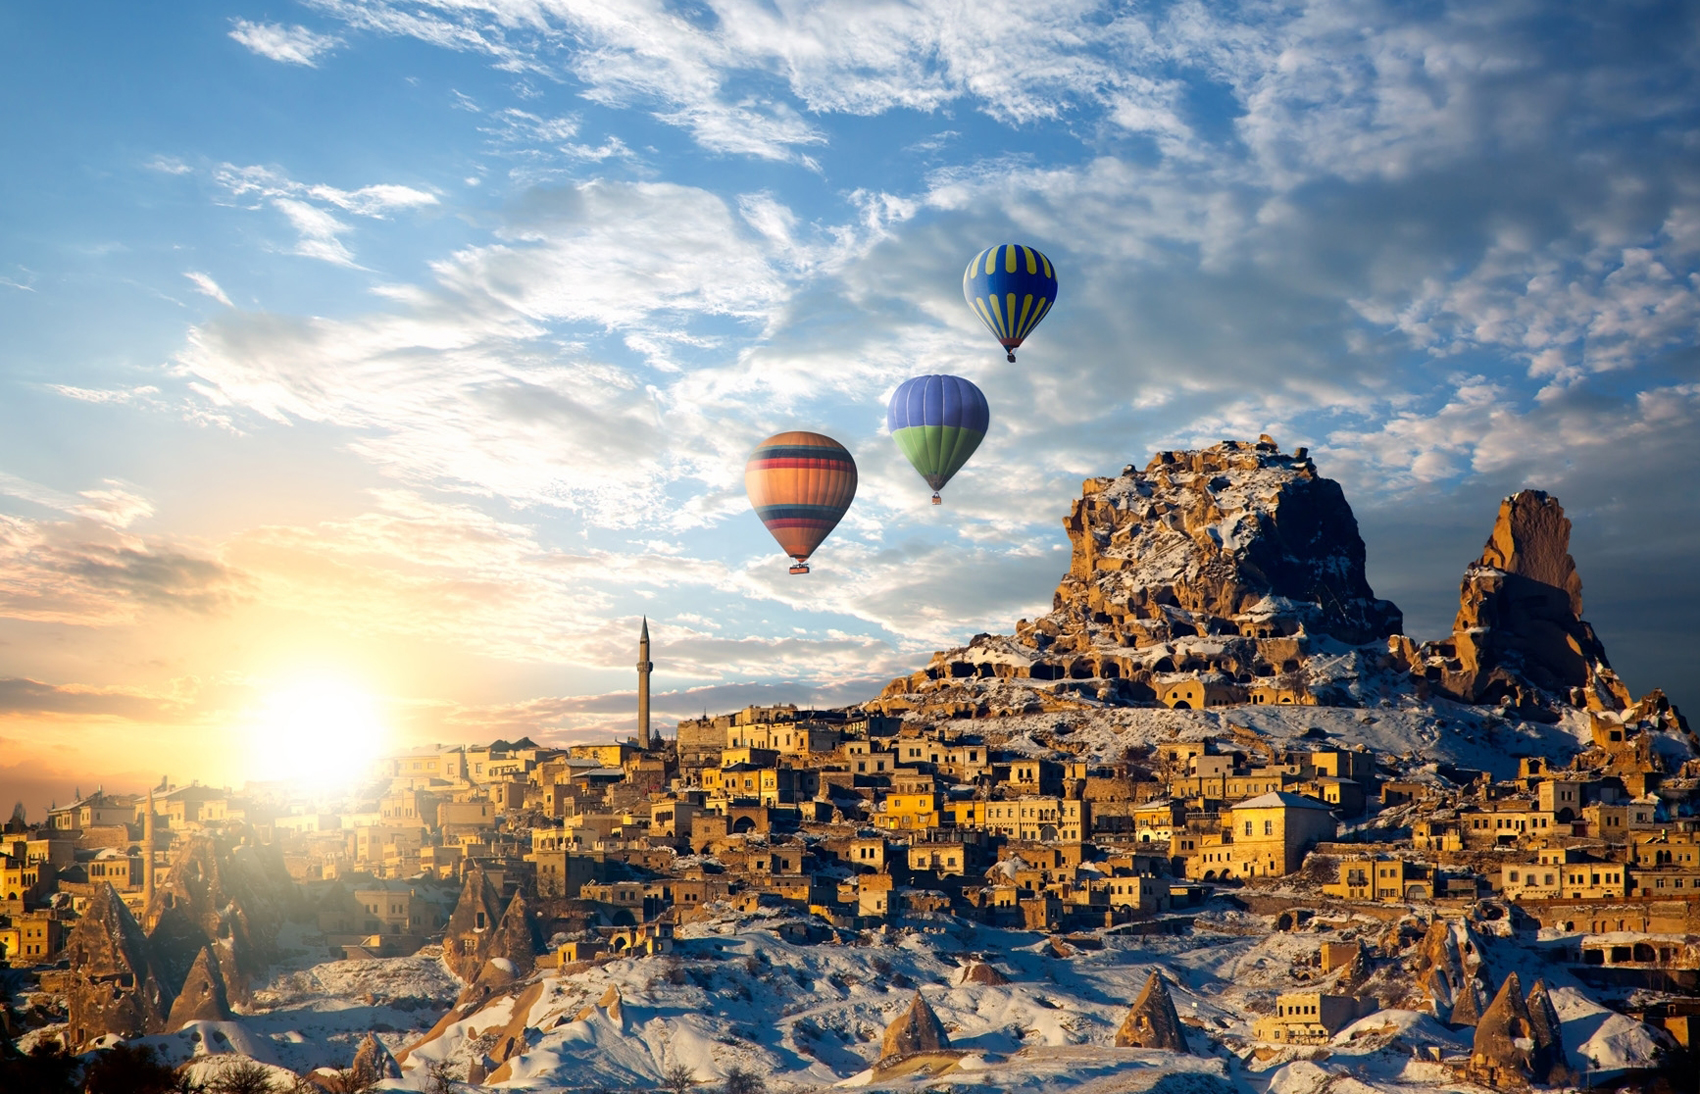 cappadocia-hot-air-balloon-tour-turkey-08